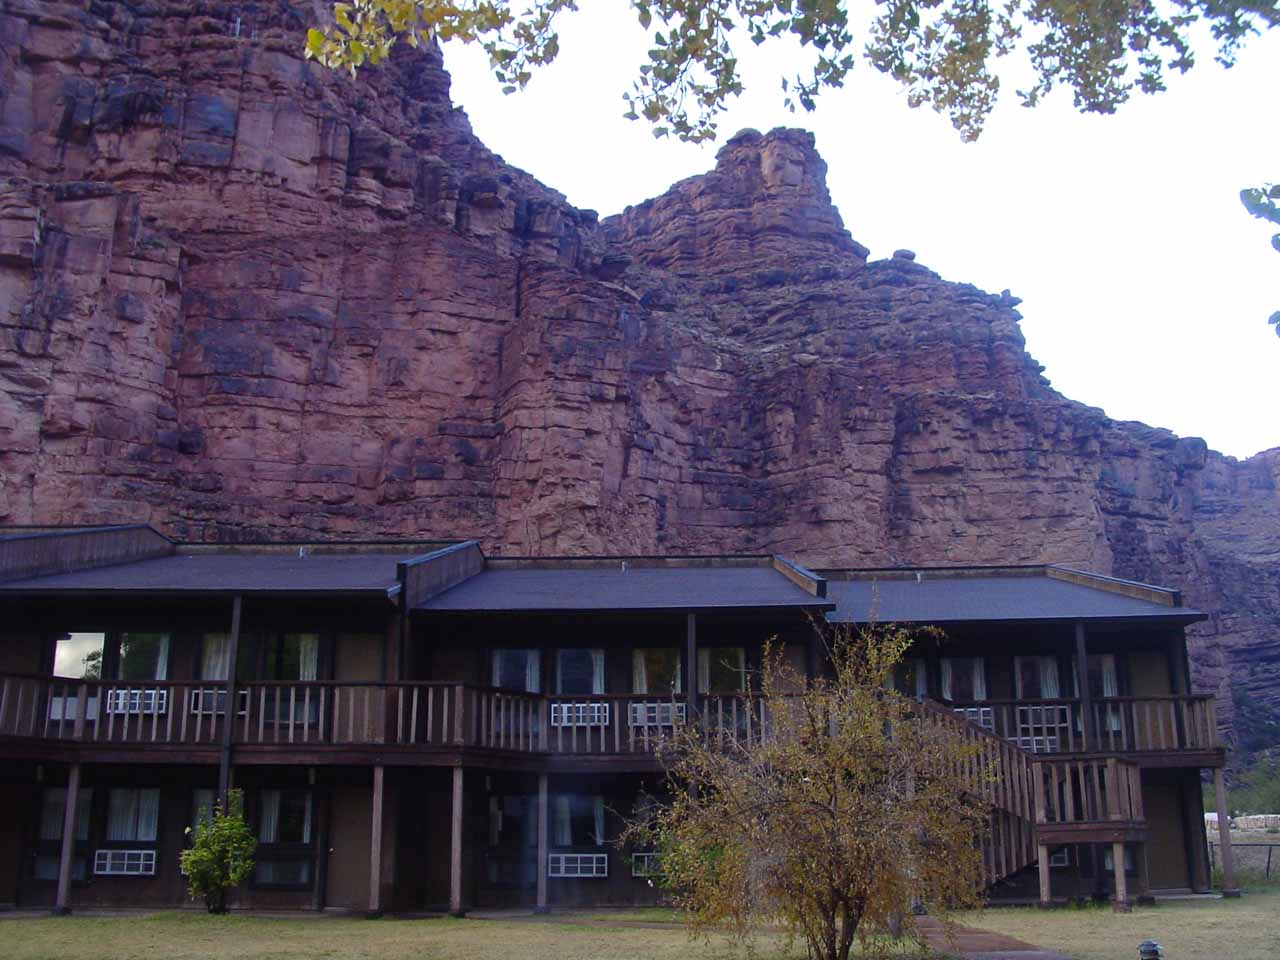 A last look at the Havasupai Lodge before leaving